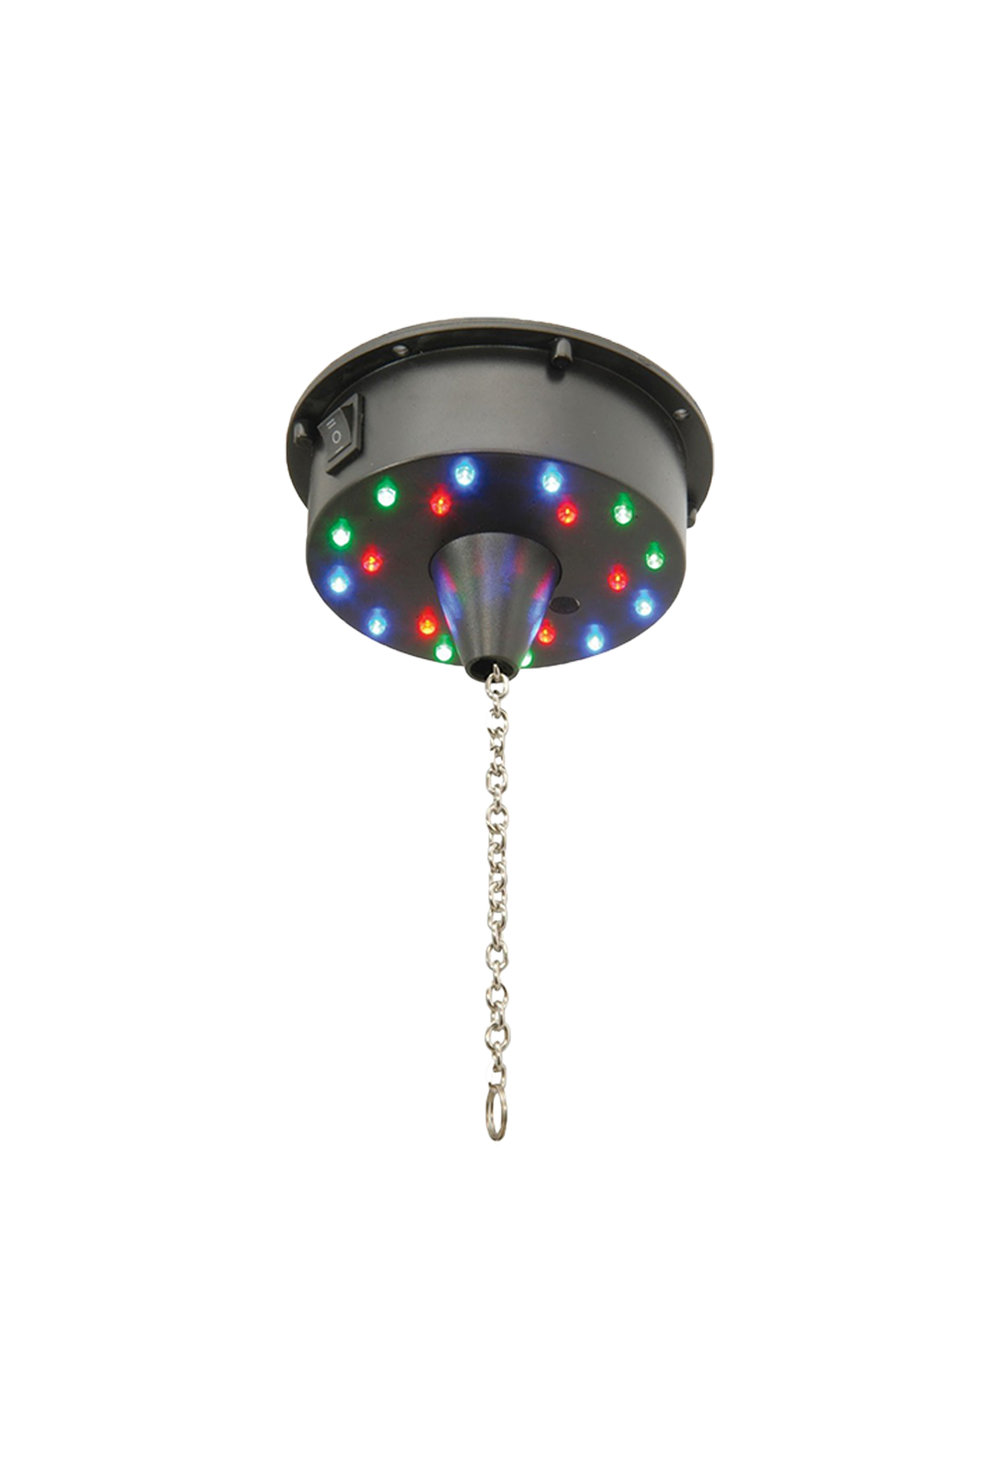 BM5 LED BATTERY POWERED MIRROR BALL MOTOR